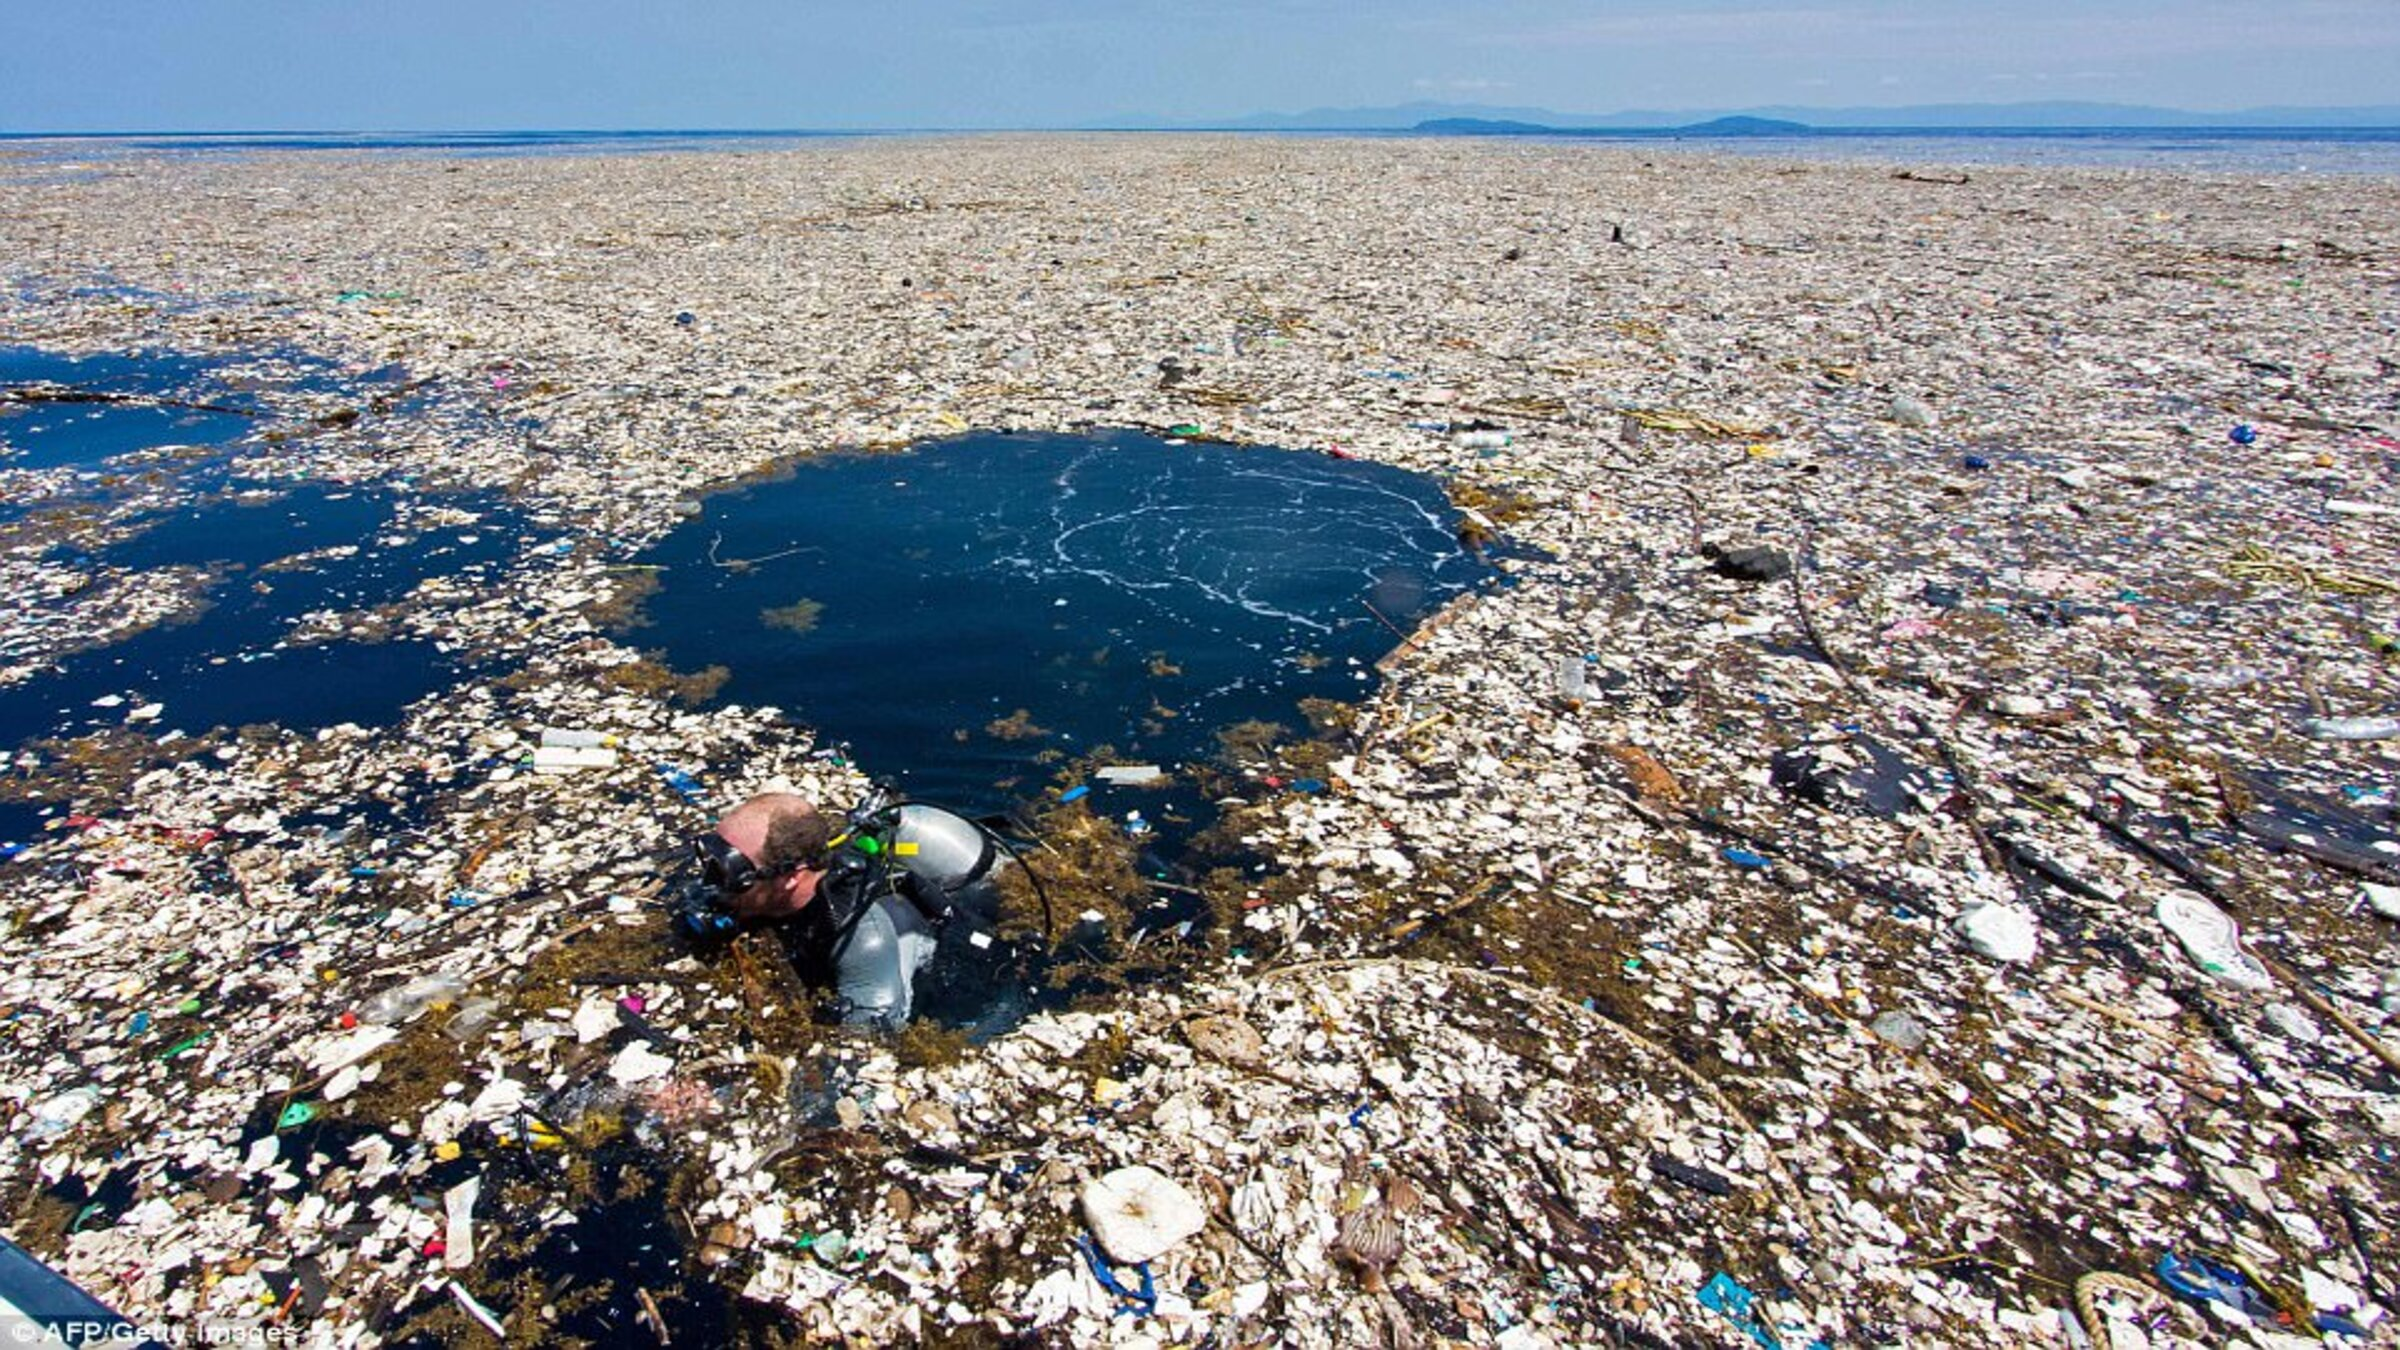 How Do Plastics Enter our Oceans?